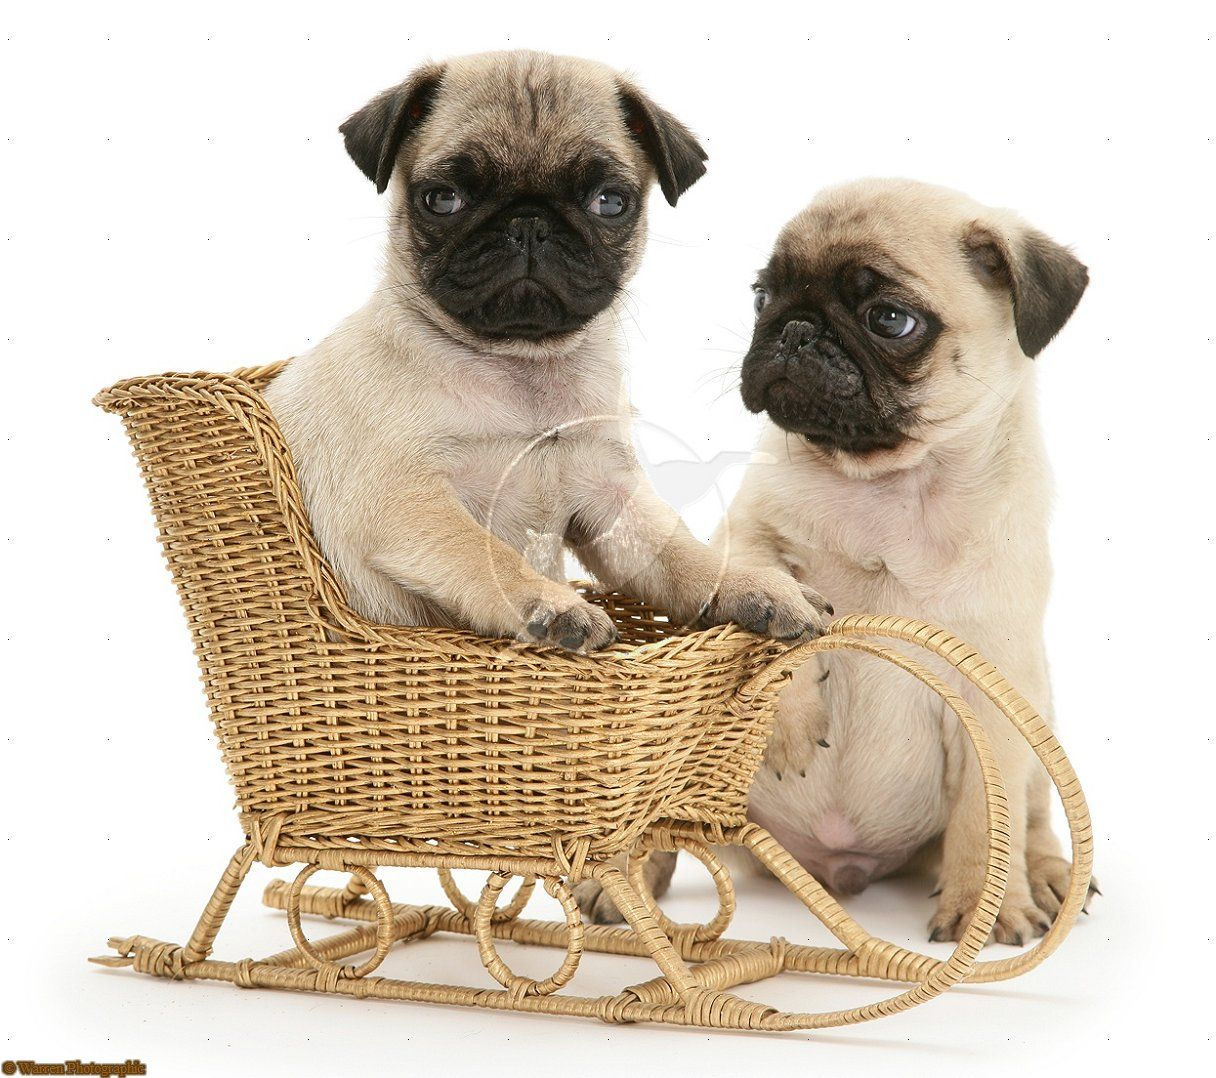 Fawn Pug Pups With A Wicker Toy Sledge Fawn Pug Baby Pugs Pugs